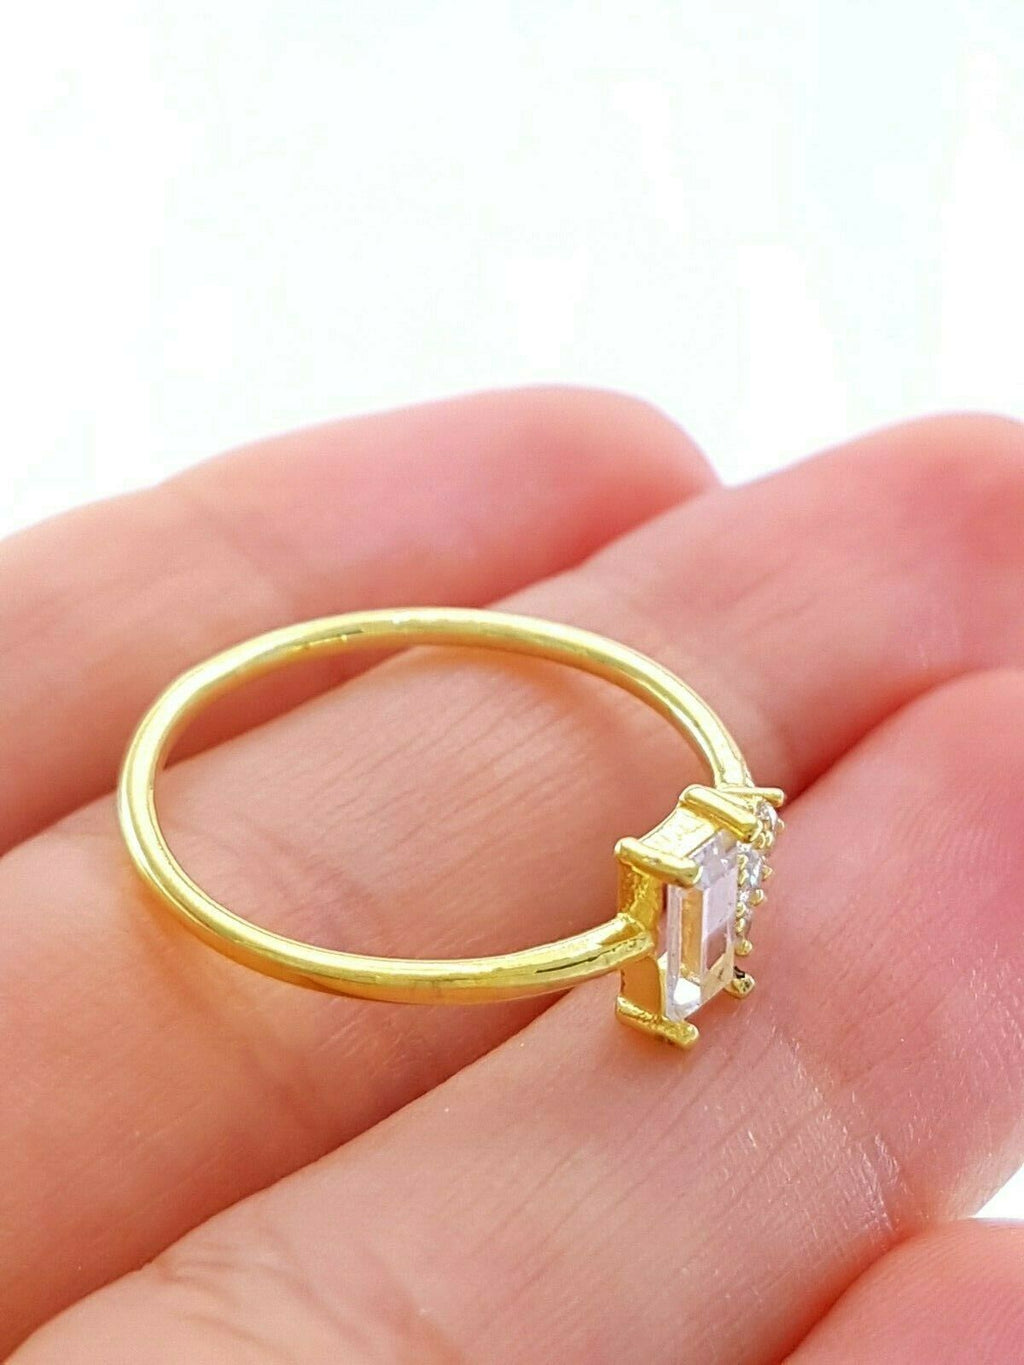 18k Gold Turkish Wholesale Handmade 925 Sterling Silver Jewelry Stackable 2020 Baguette Mini Ring Gold Plate - Turkishsilverjewelry